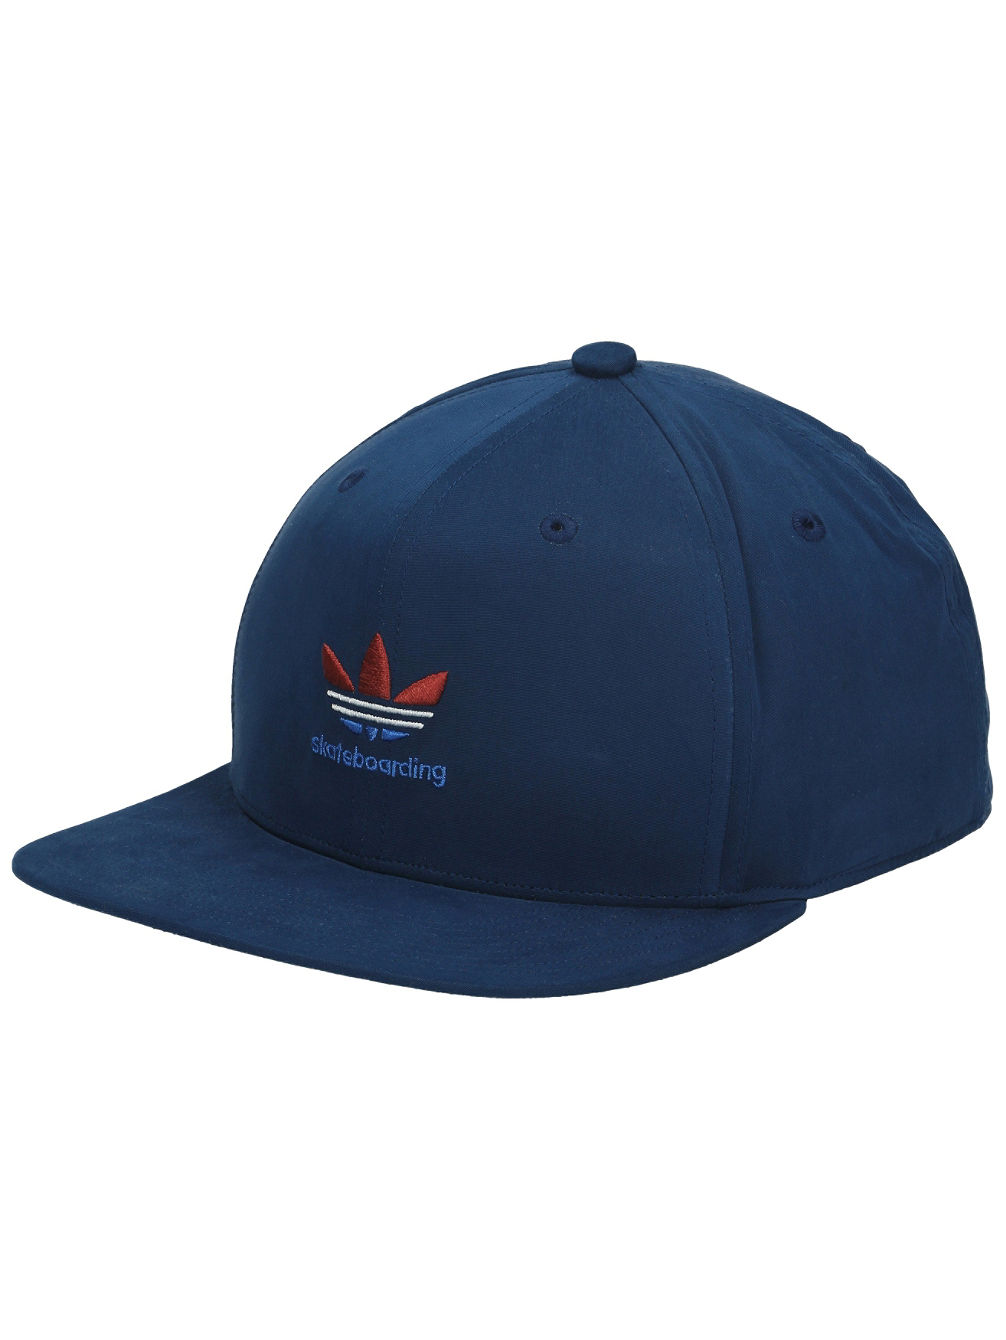 Buy adidas Skateboarding Nautical Trefoil Snapback Cap online at ... 74a9458add9